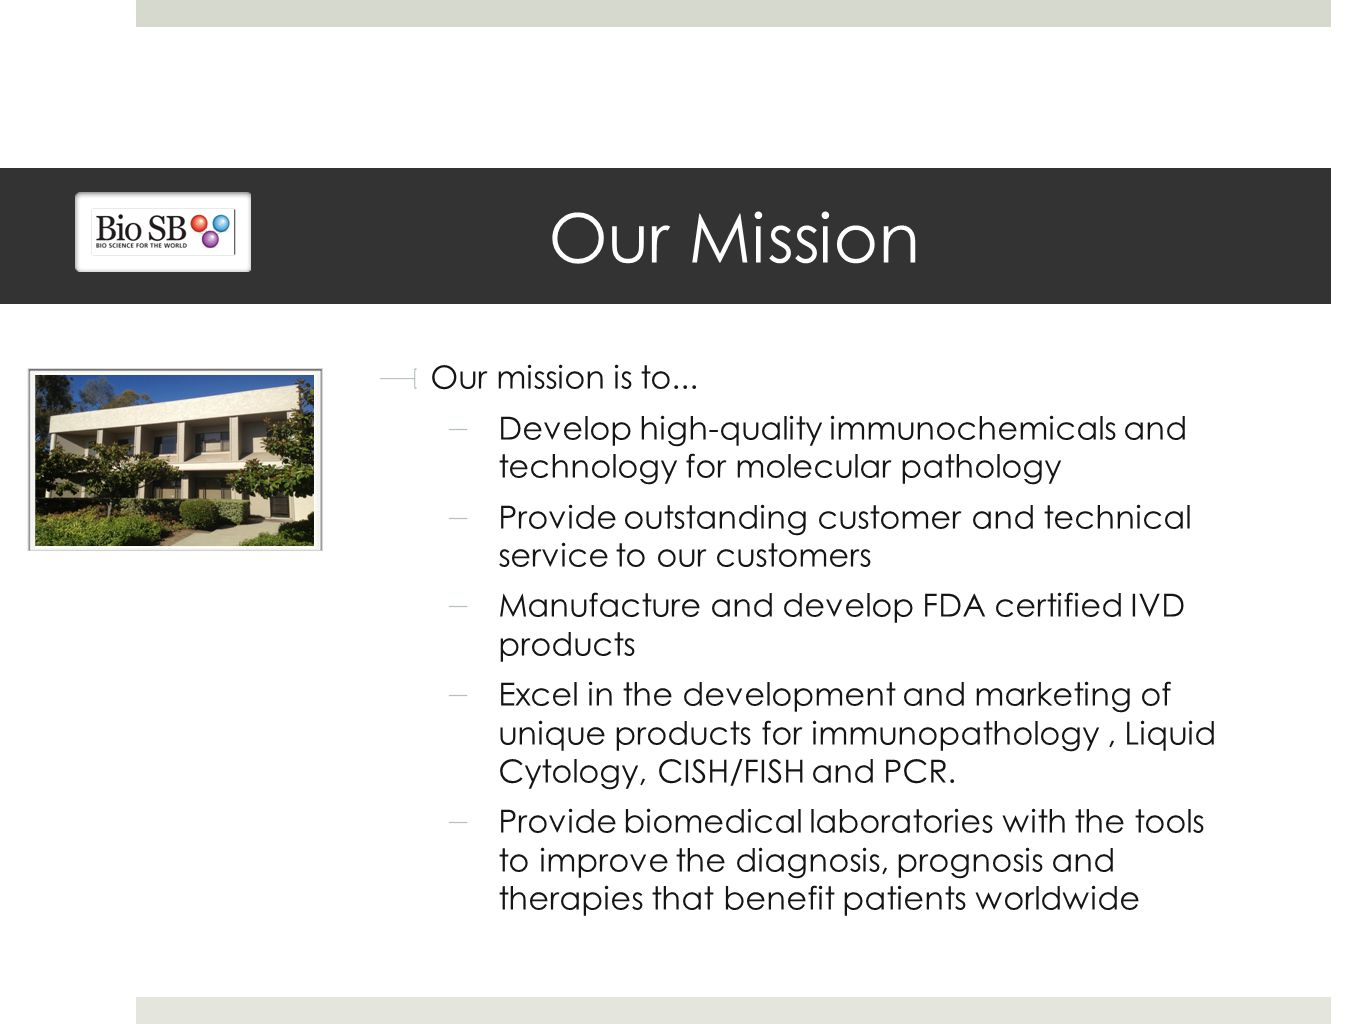 Our Mission Our mission is to...